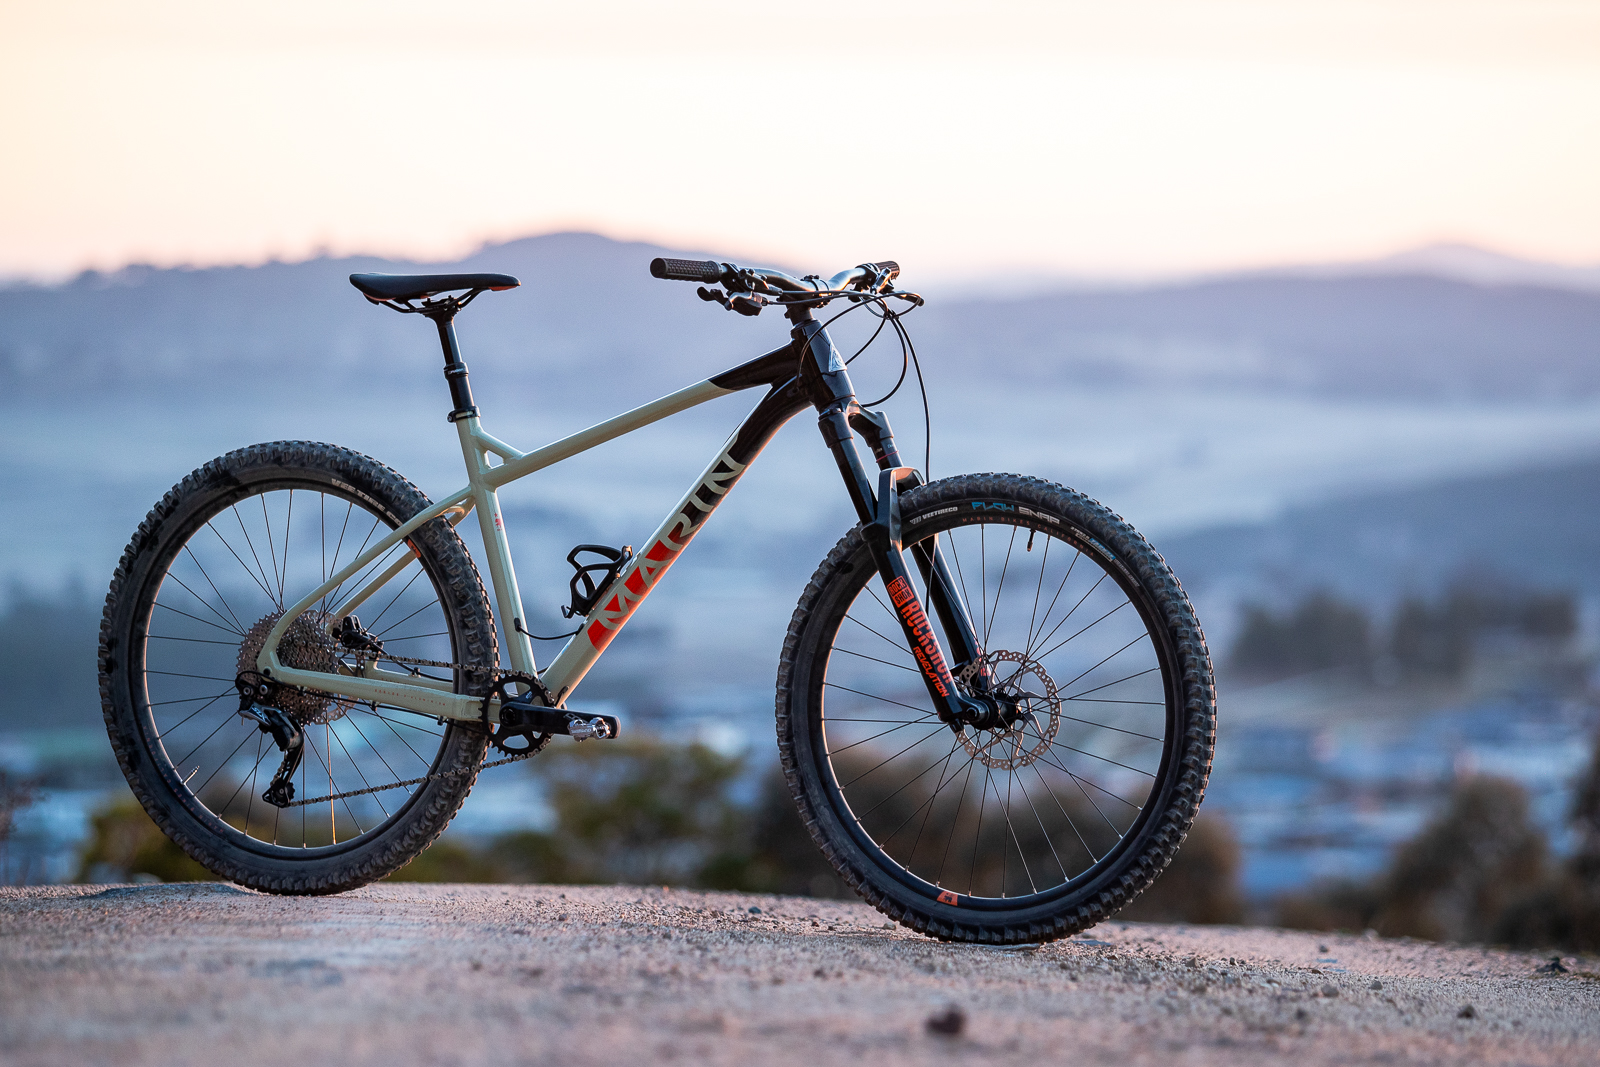 Buying direct: Unboxing the Marin San Quentin 3